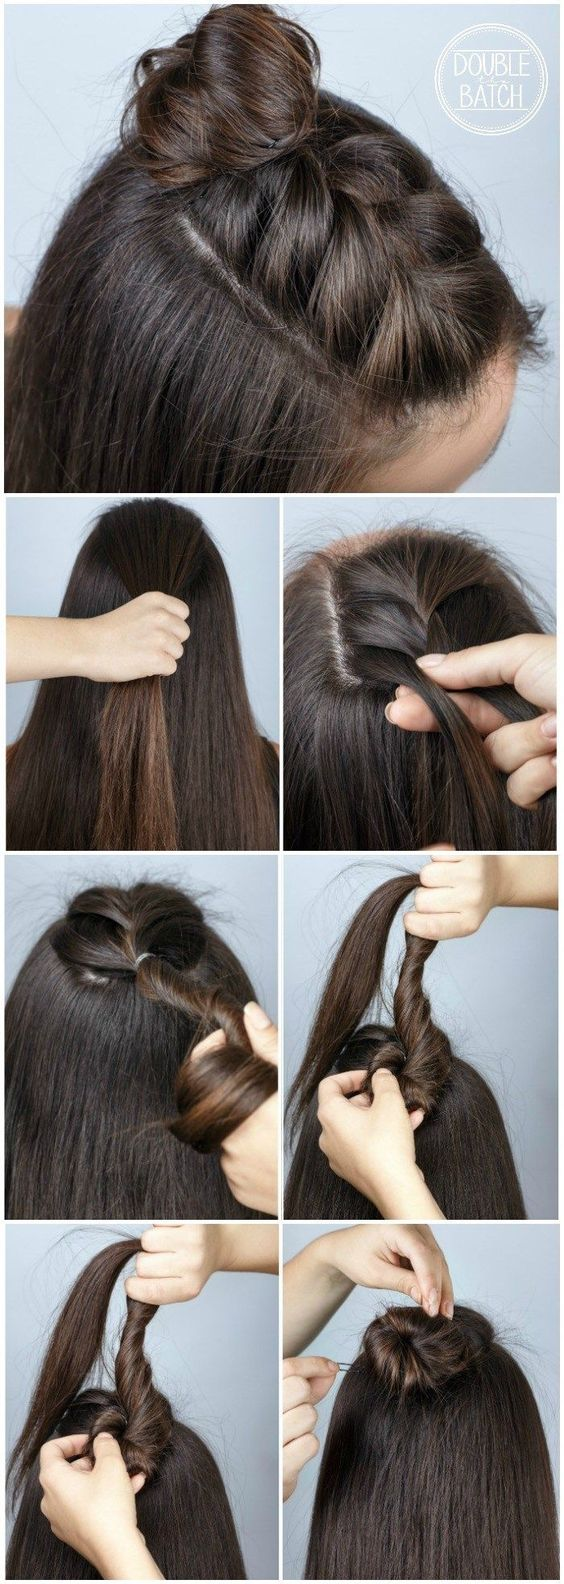 22 Quick and Easy BacktoSchool Hairstyle Tutorials